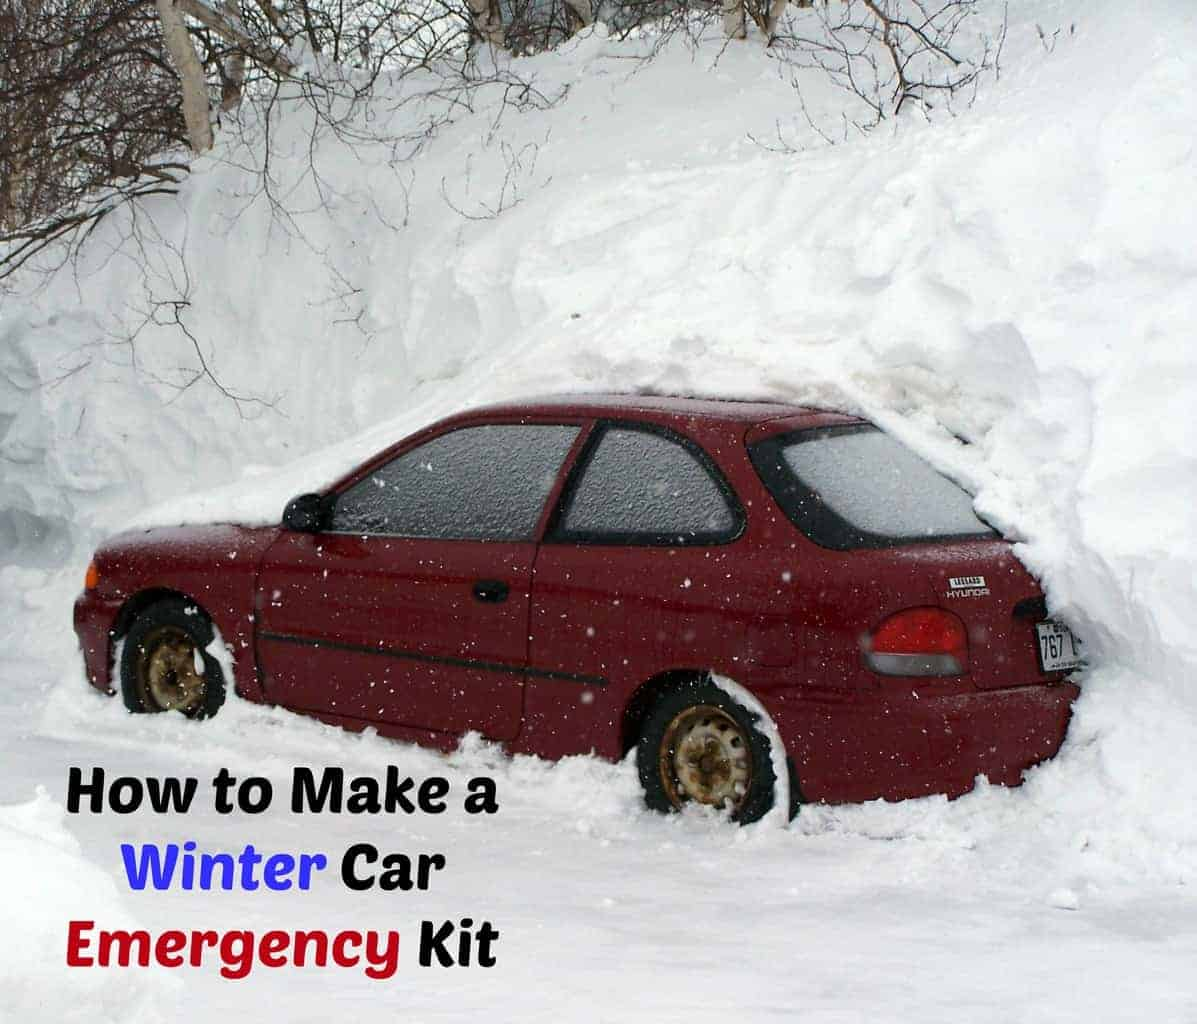 How to Create a Winter Car Emergency Kit